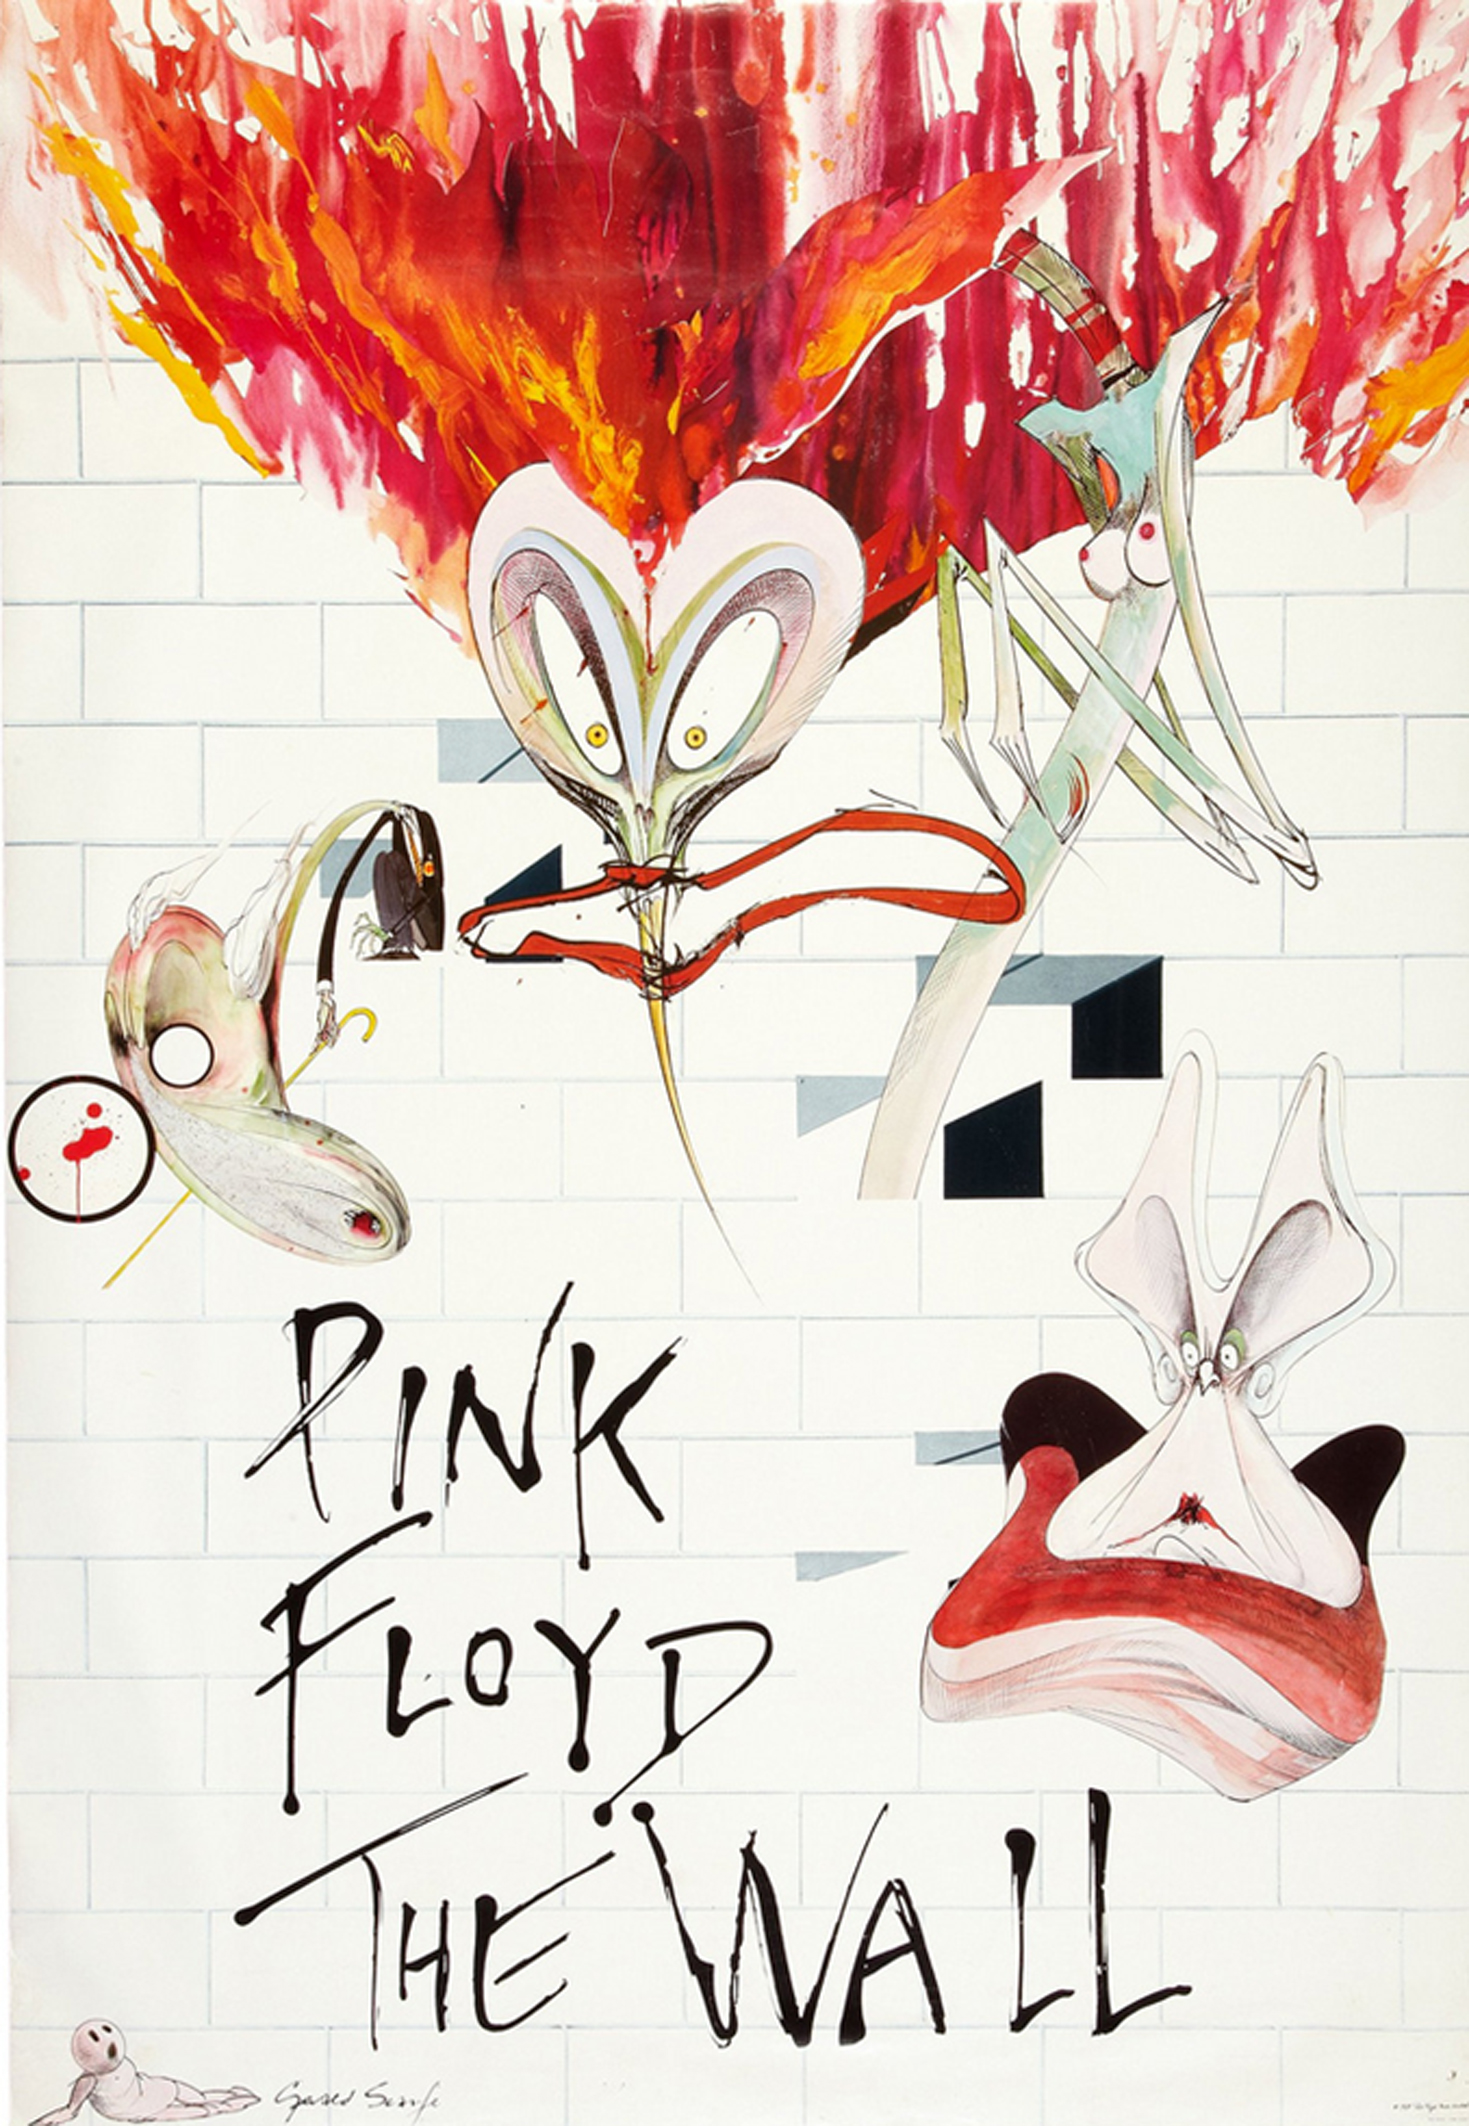 Pink Floyd The Wall Promo Poster (1980)